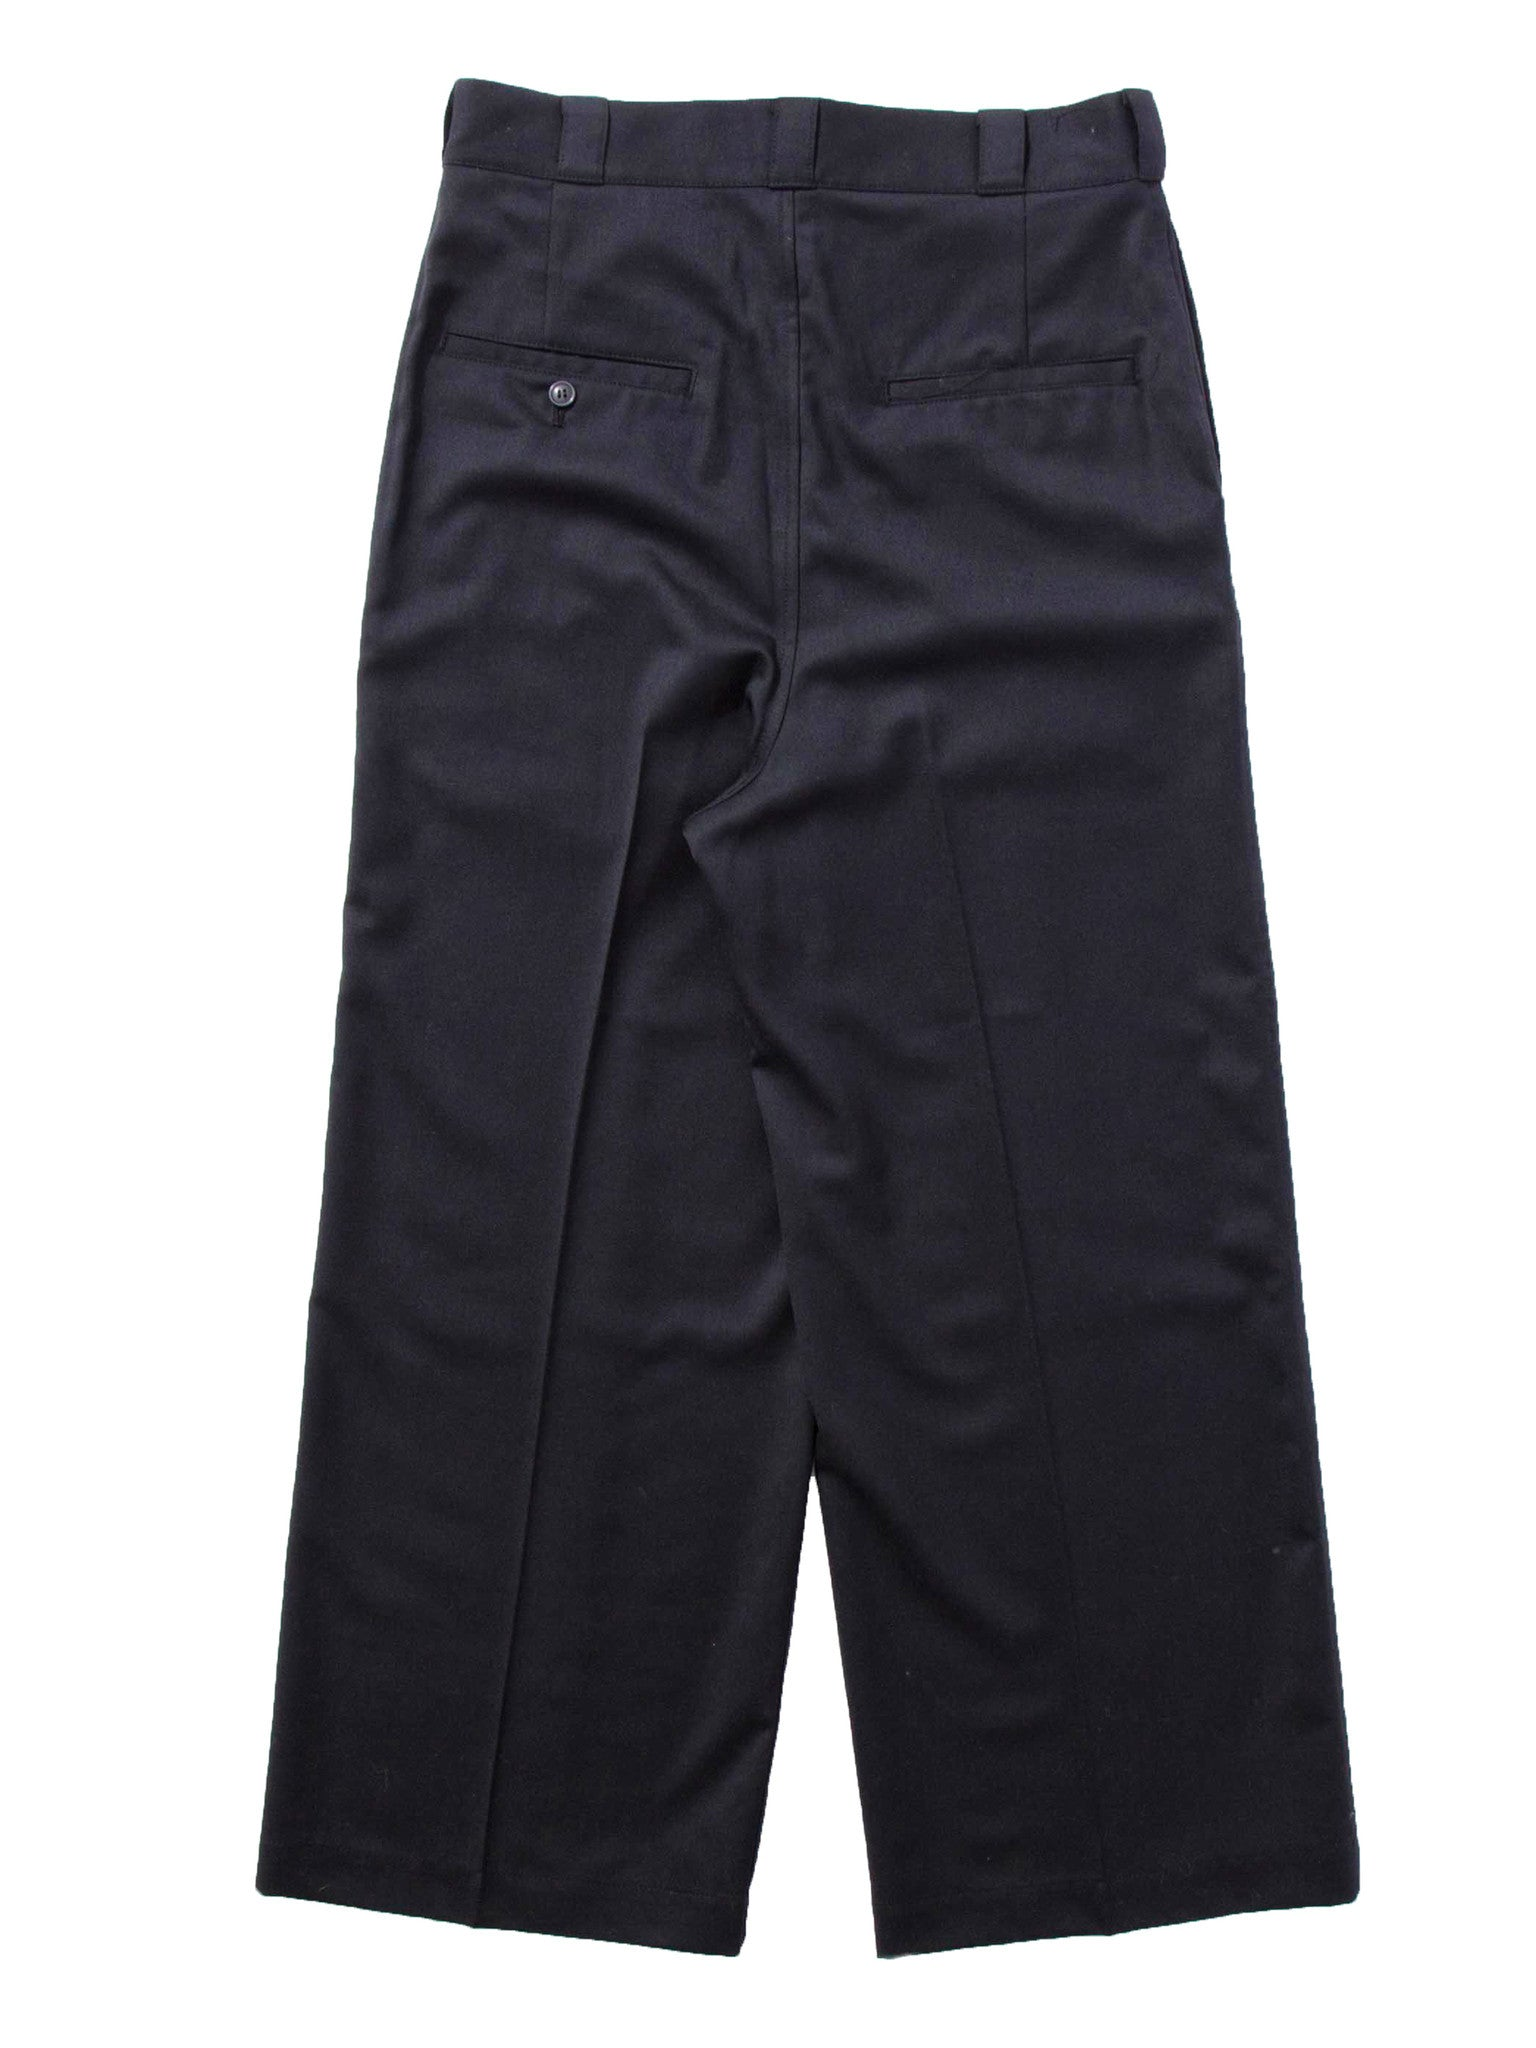 Black Wide Leg Wool Trouser 8